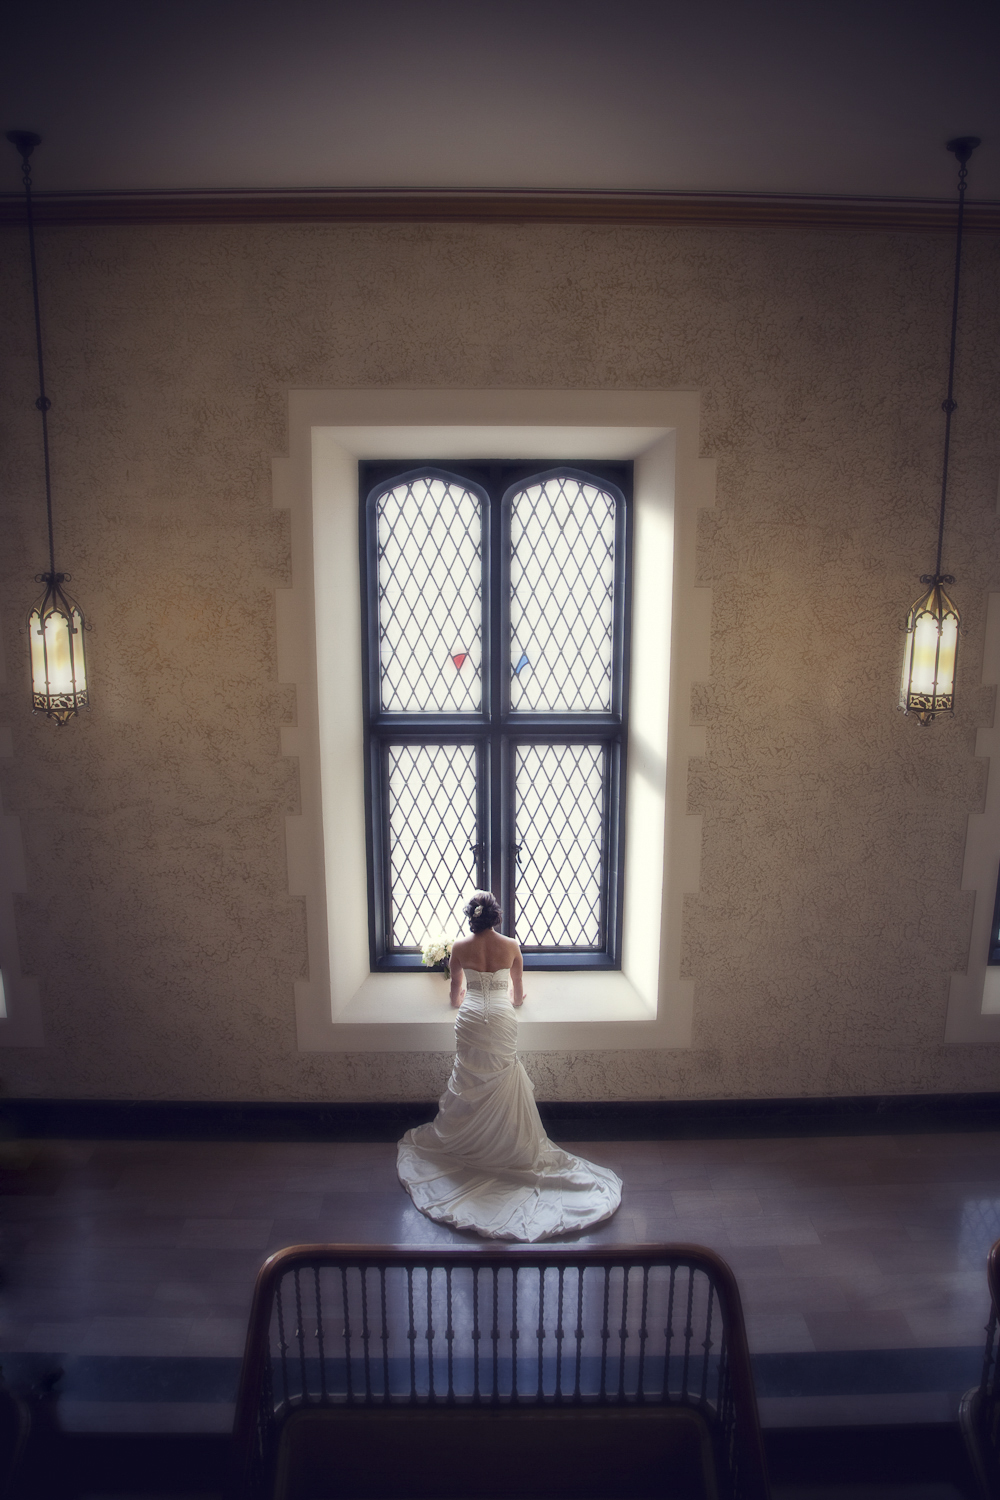 Indianapolis-Indiana-wedding-photography-Scottish-Rite-Crowes-Eye-Photography_002.jpg